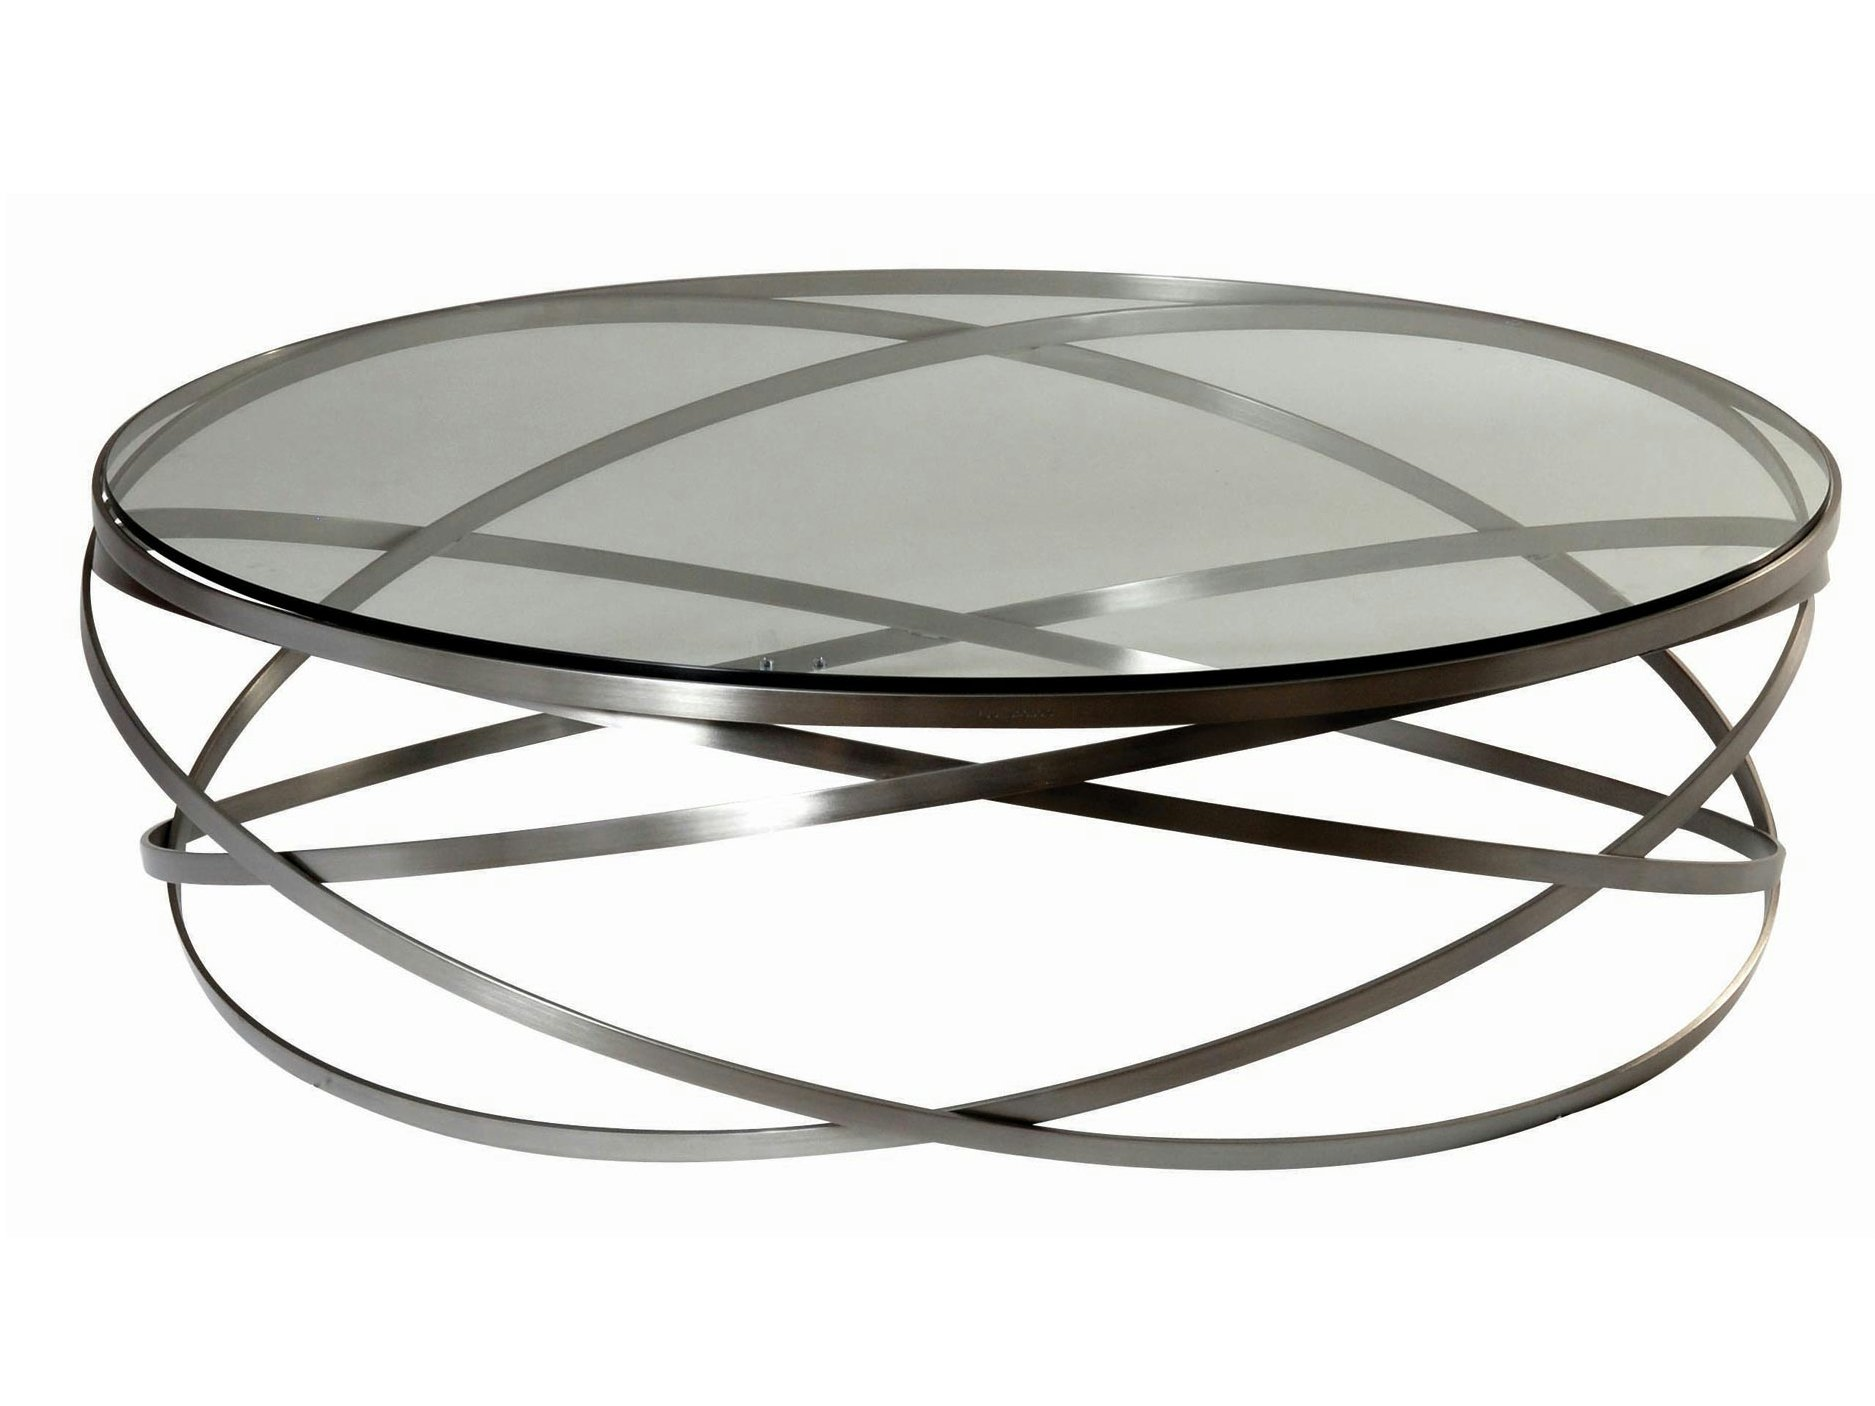 Table basse ronde evol by roche bobois design c dric ragot - Roche bobois table basse ...